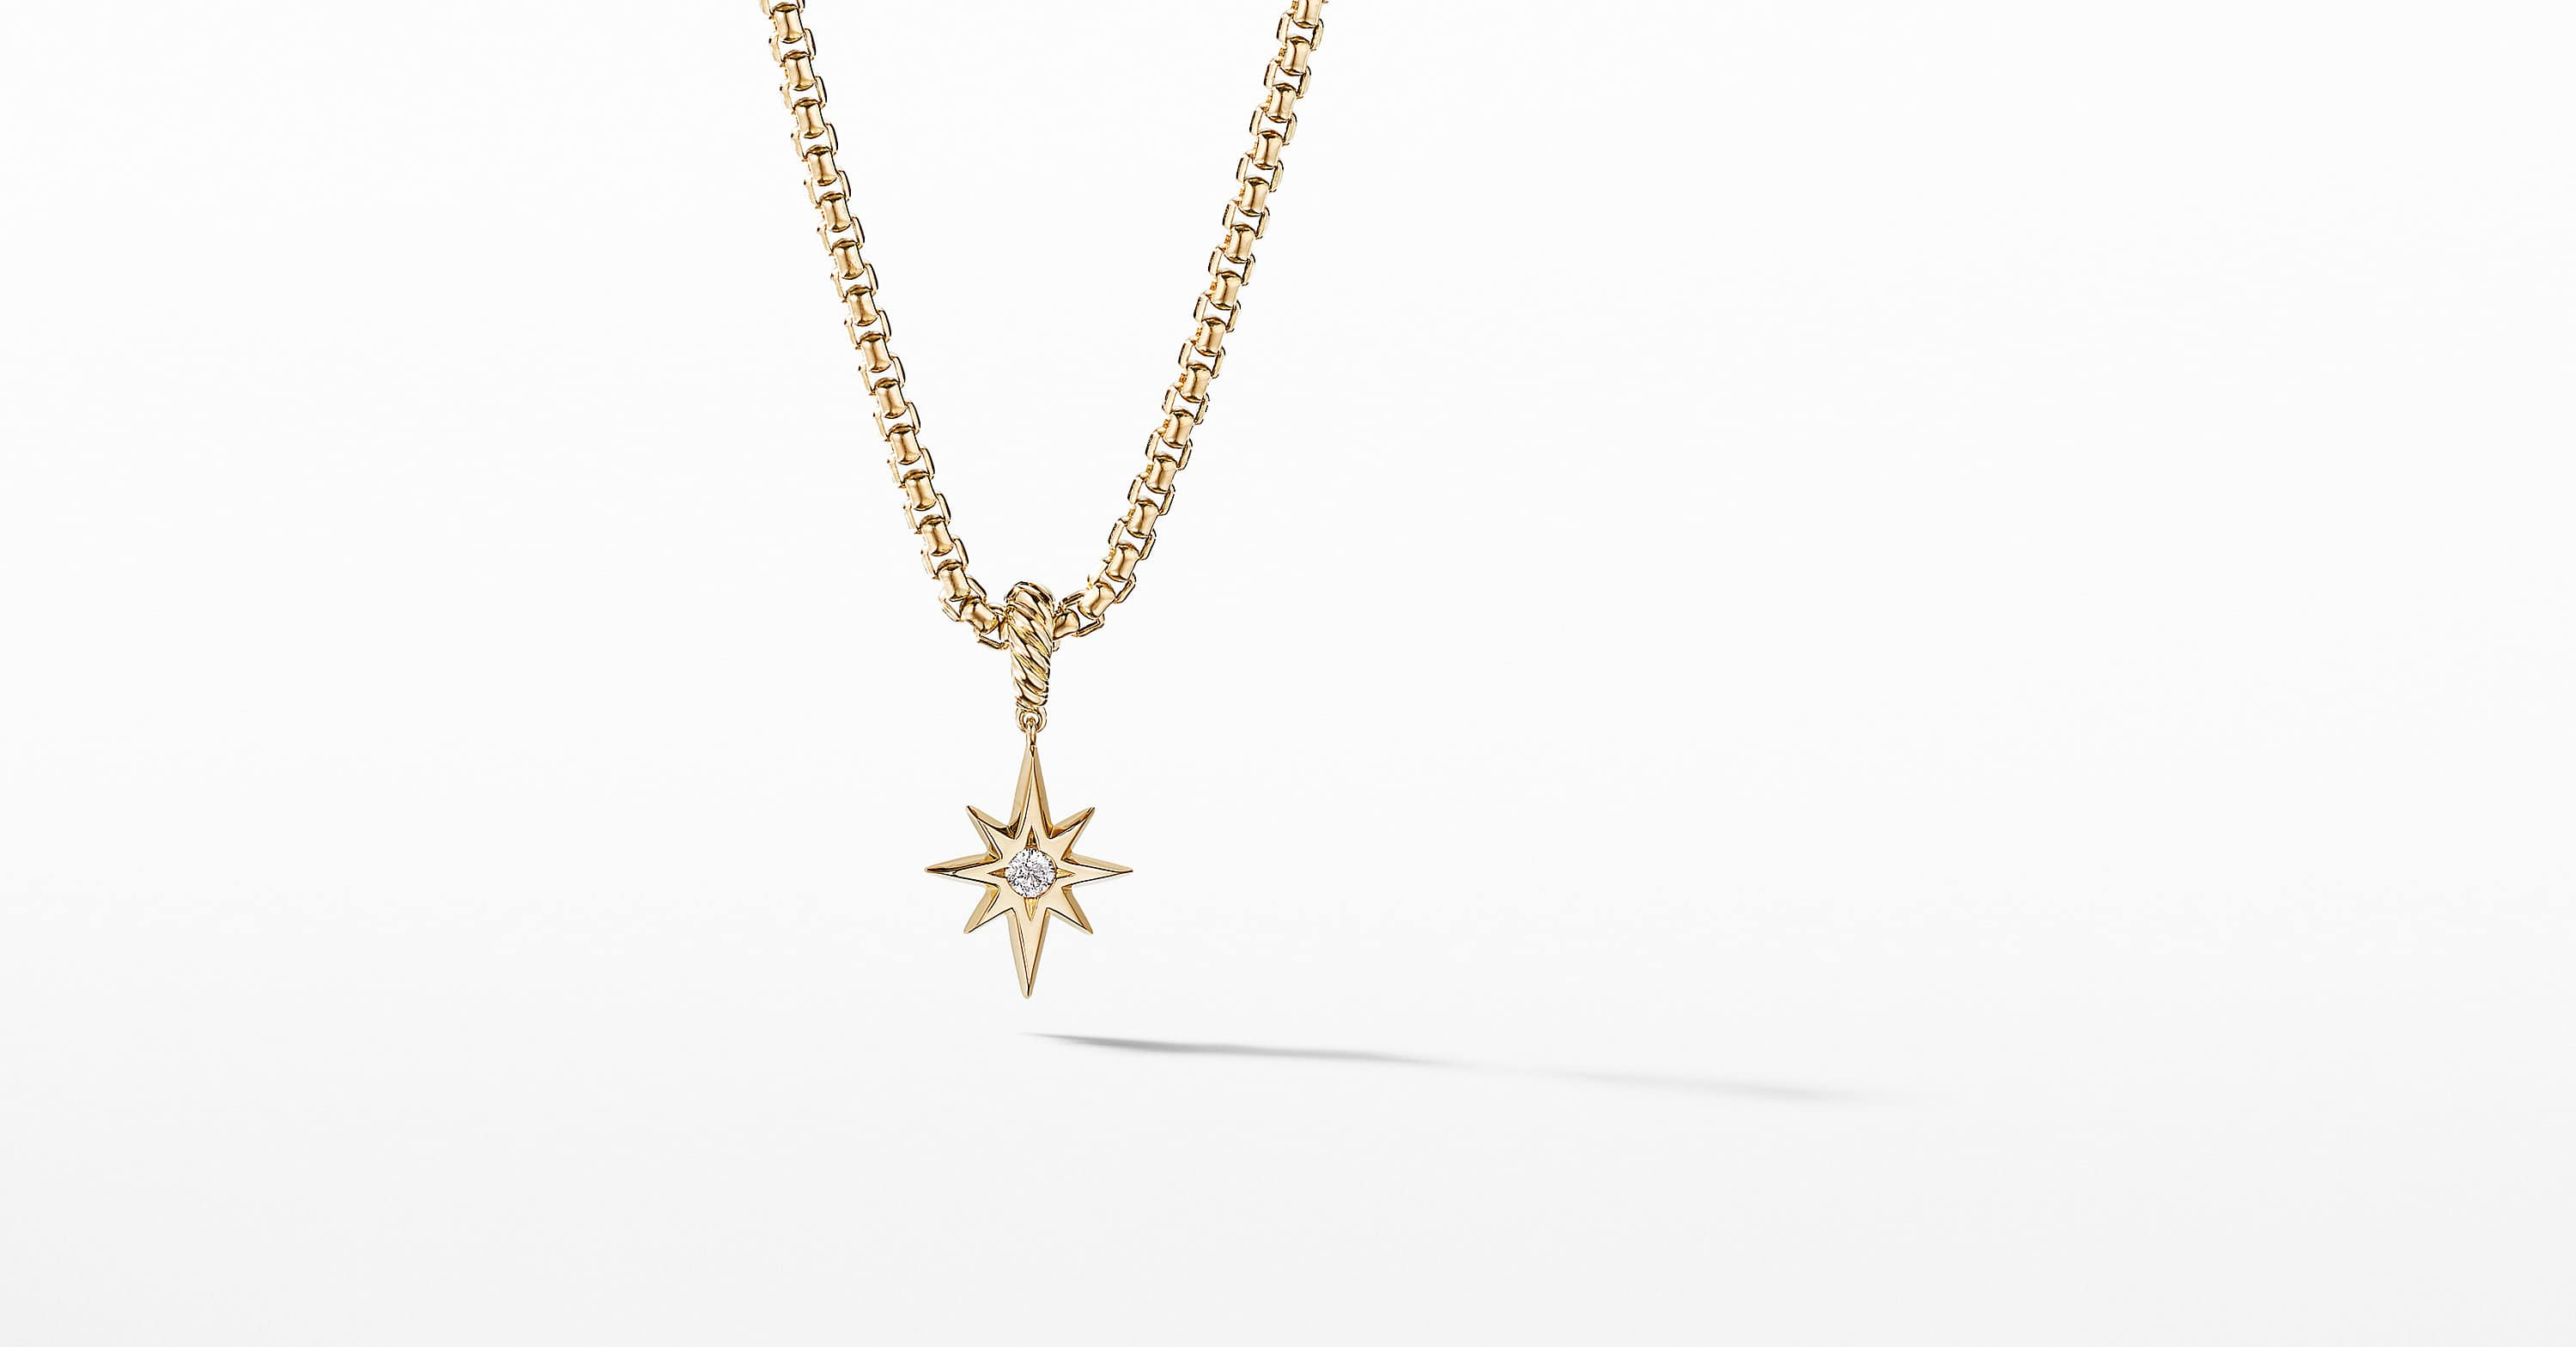 North Star Birthstone Charm in 18K Yellow Gold with Center Diamond